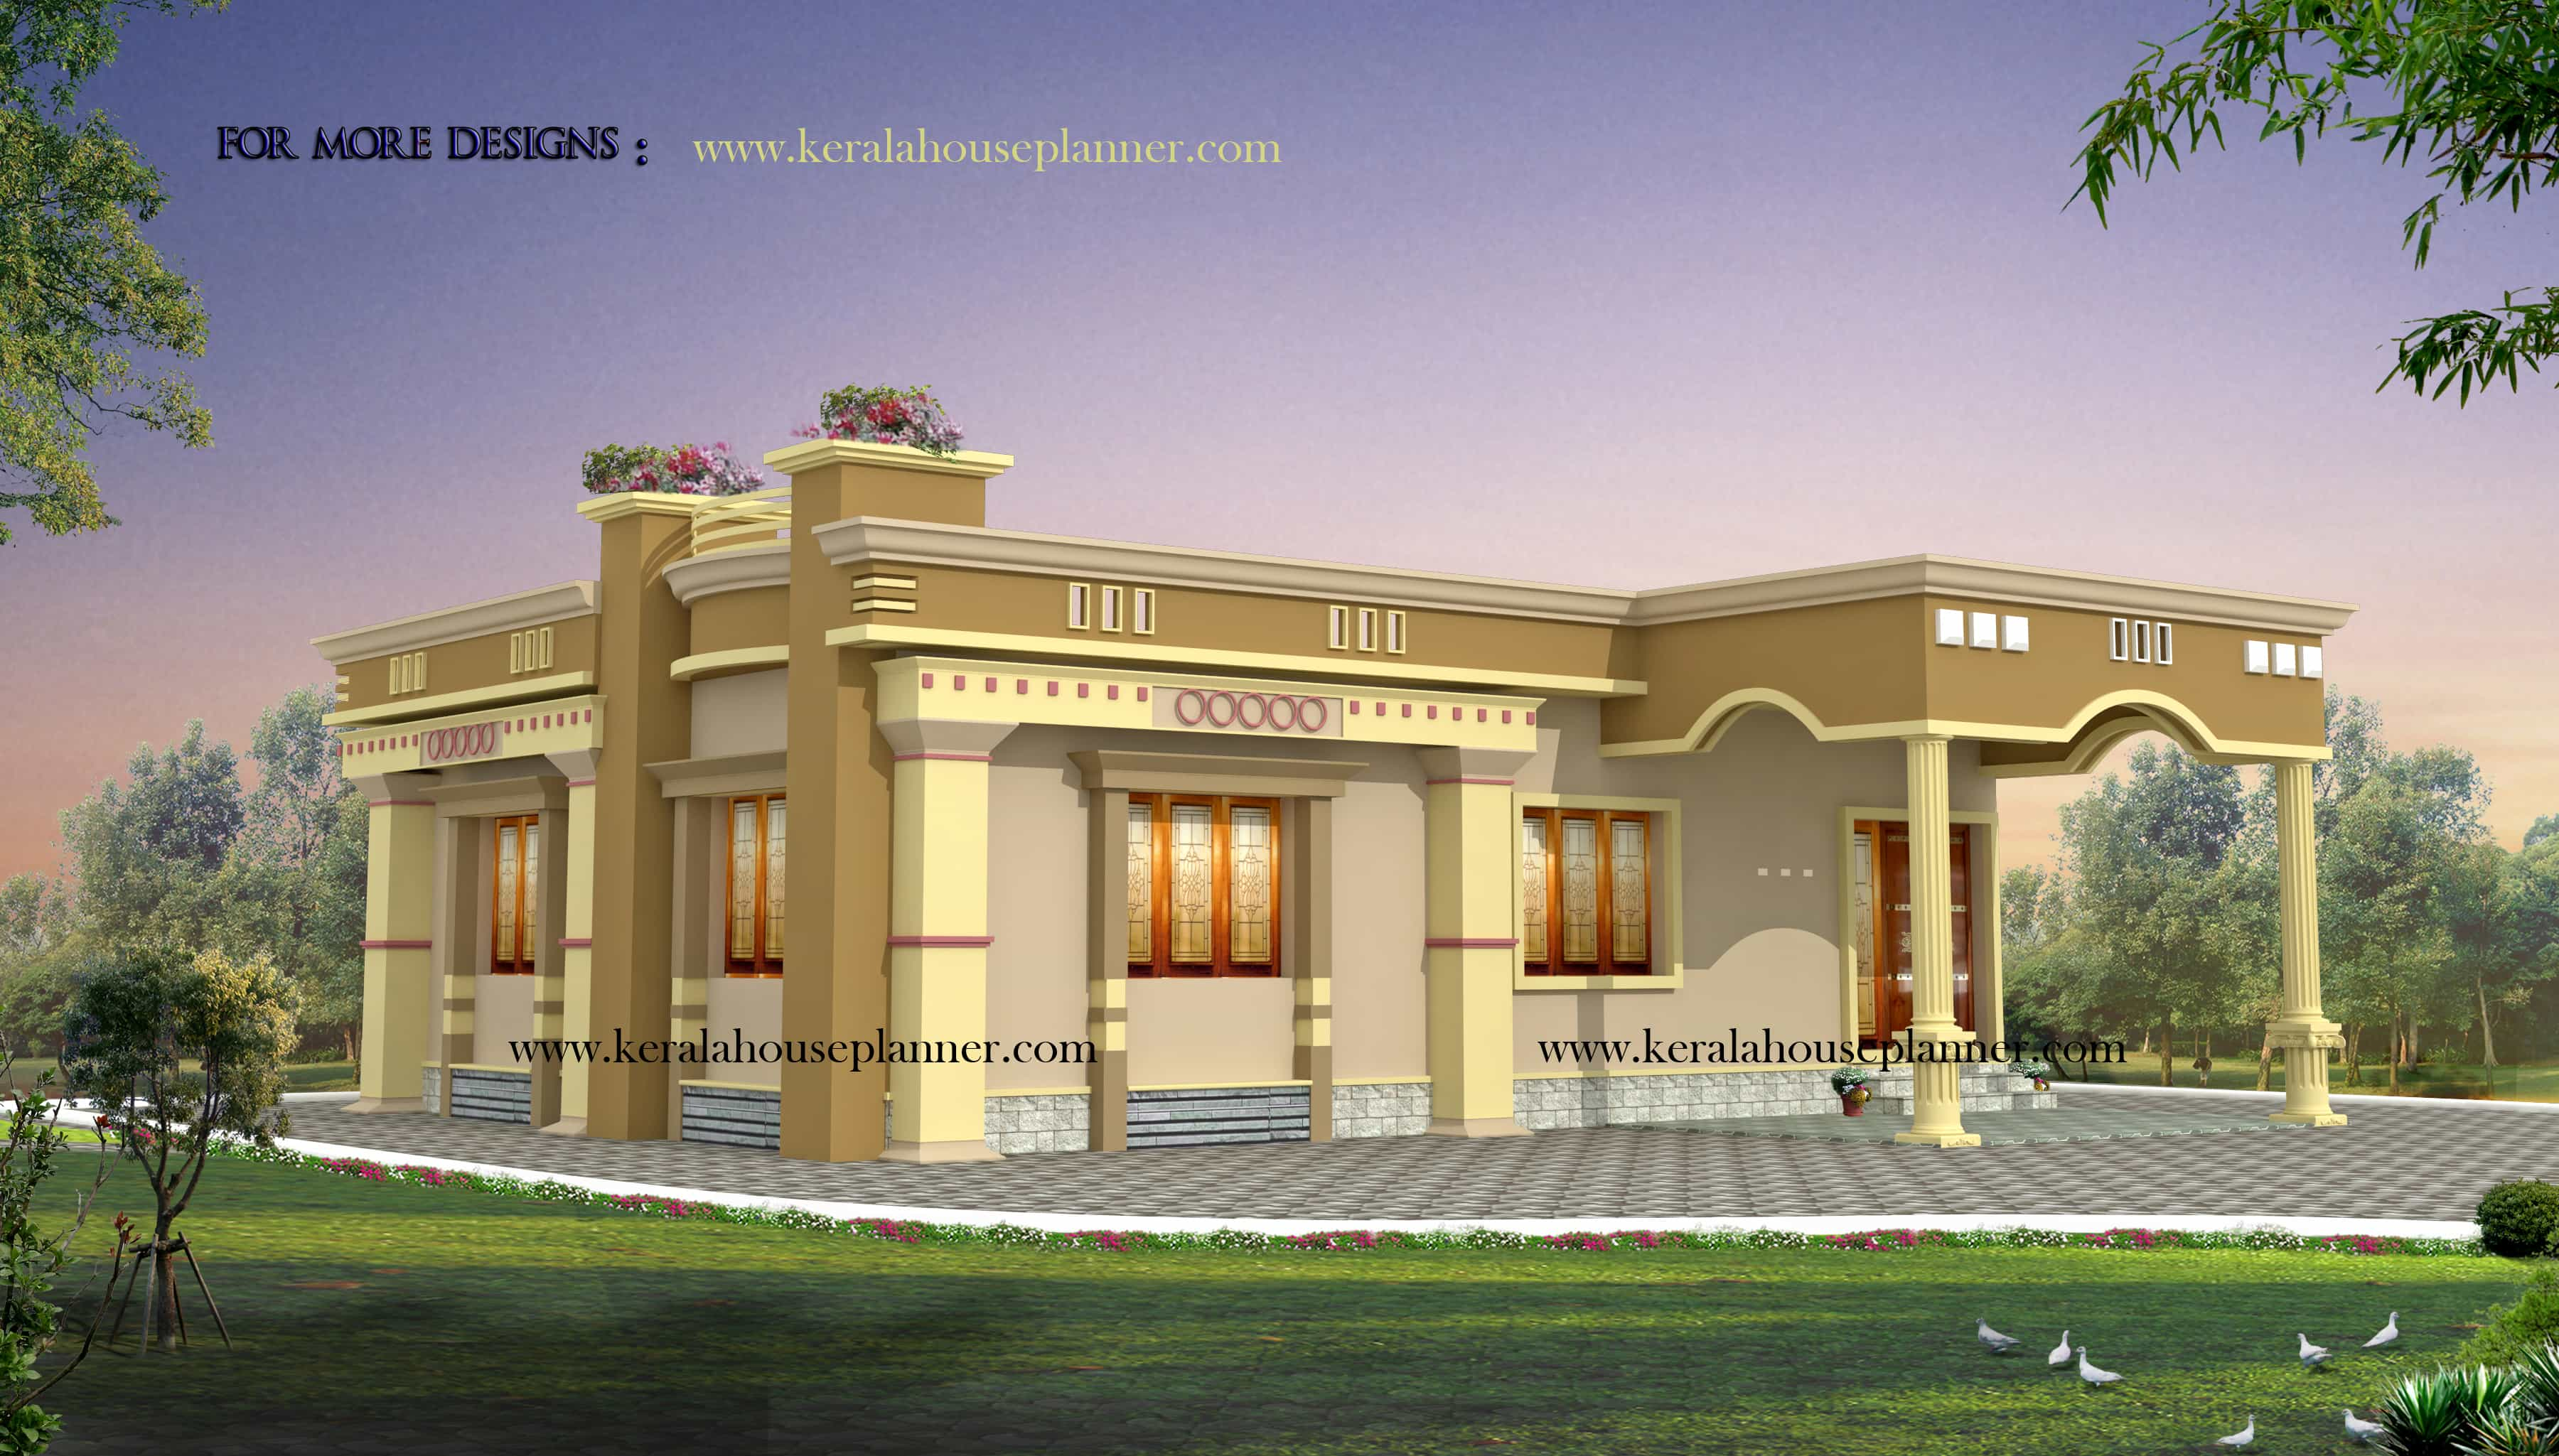 Kerala house plans 1200 sq ft with photos khp for Two storey house plans in kerala